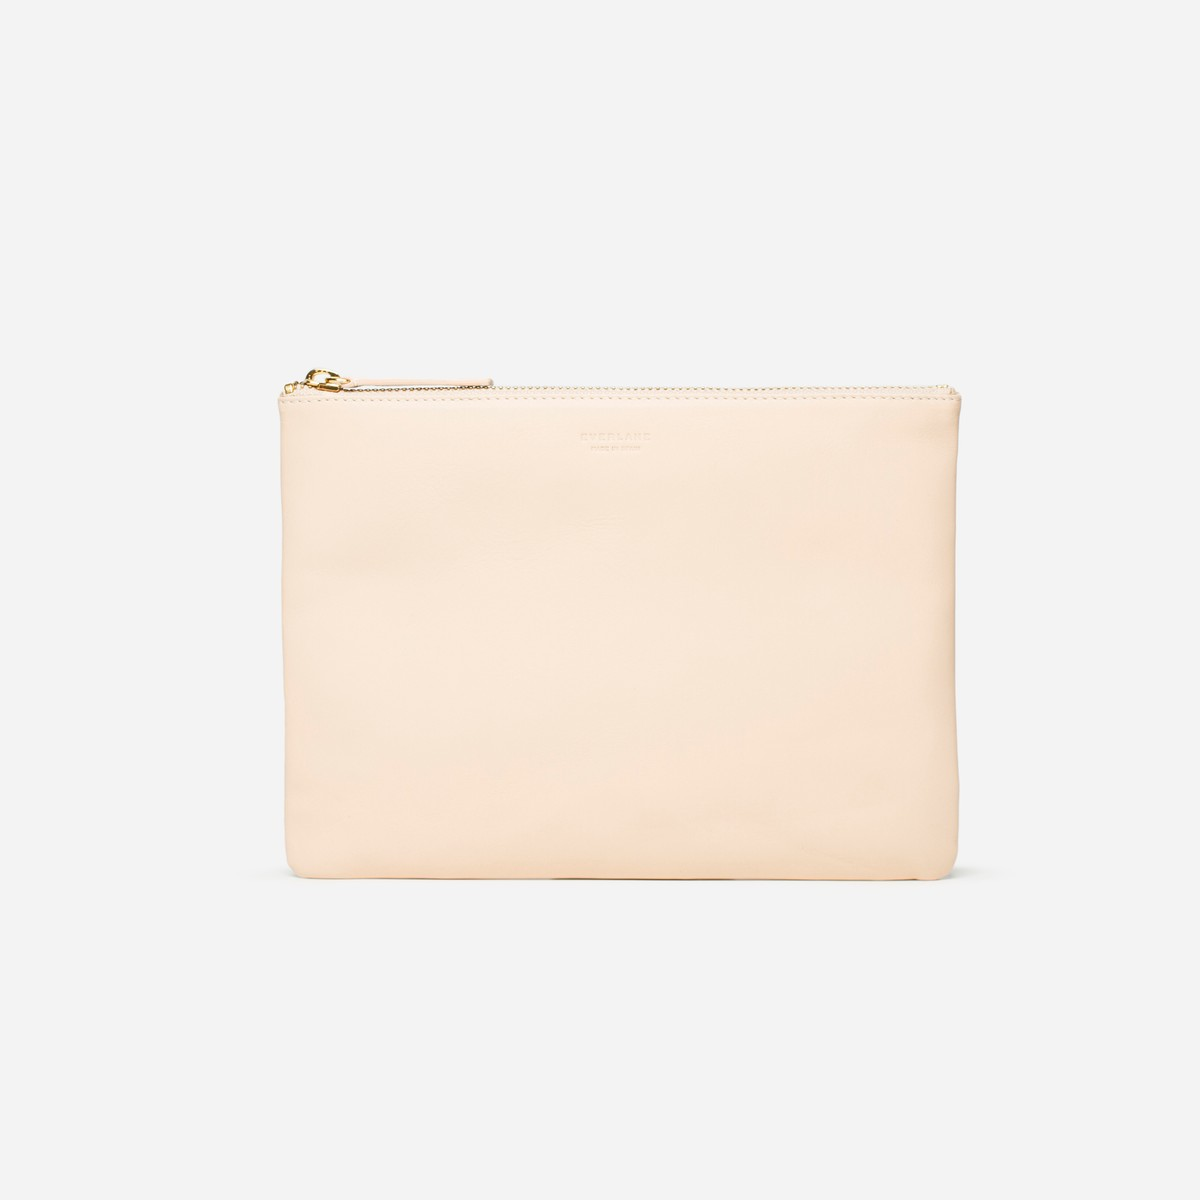 everlane-leather-pouch-8